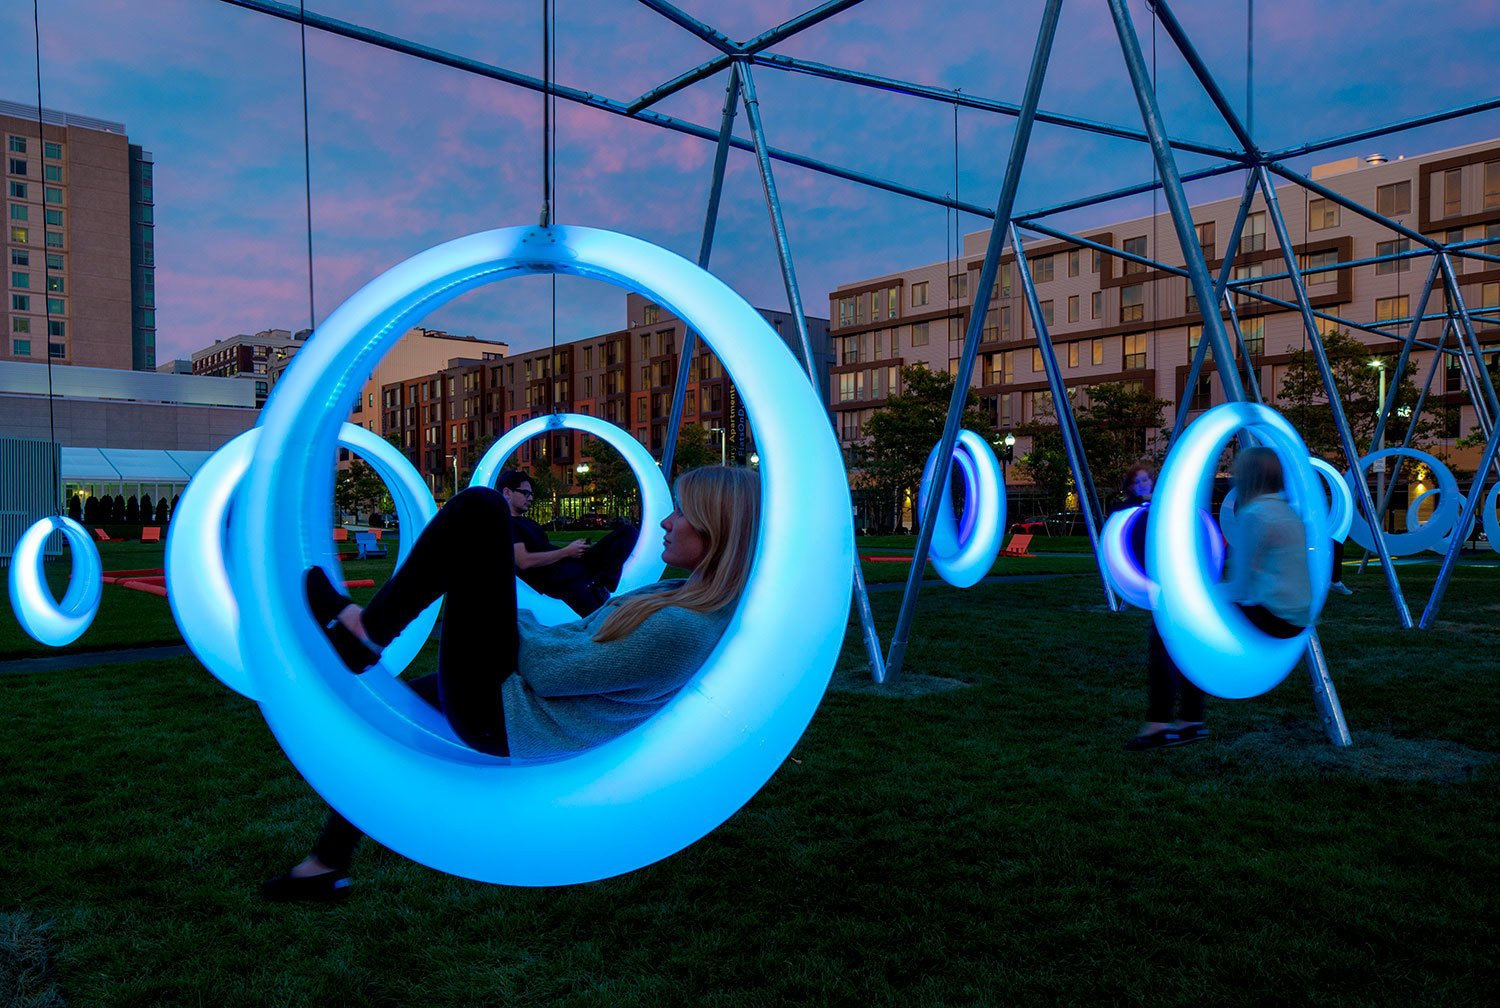 An installation brought 20 circular, glowing swings to a grassy area near the Boston Convention Center. LED lights embedded in the polypropylene swings change color depending on its motion.  Architecture Firm You Should Know: Höweler + Yoon by Allie Weiss